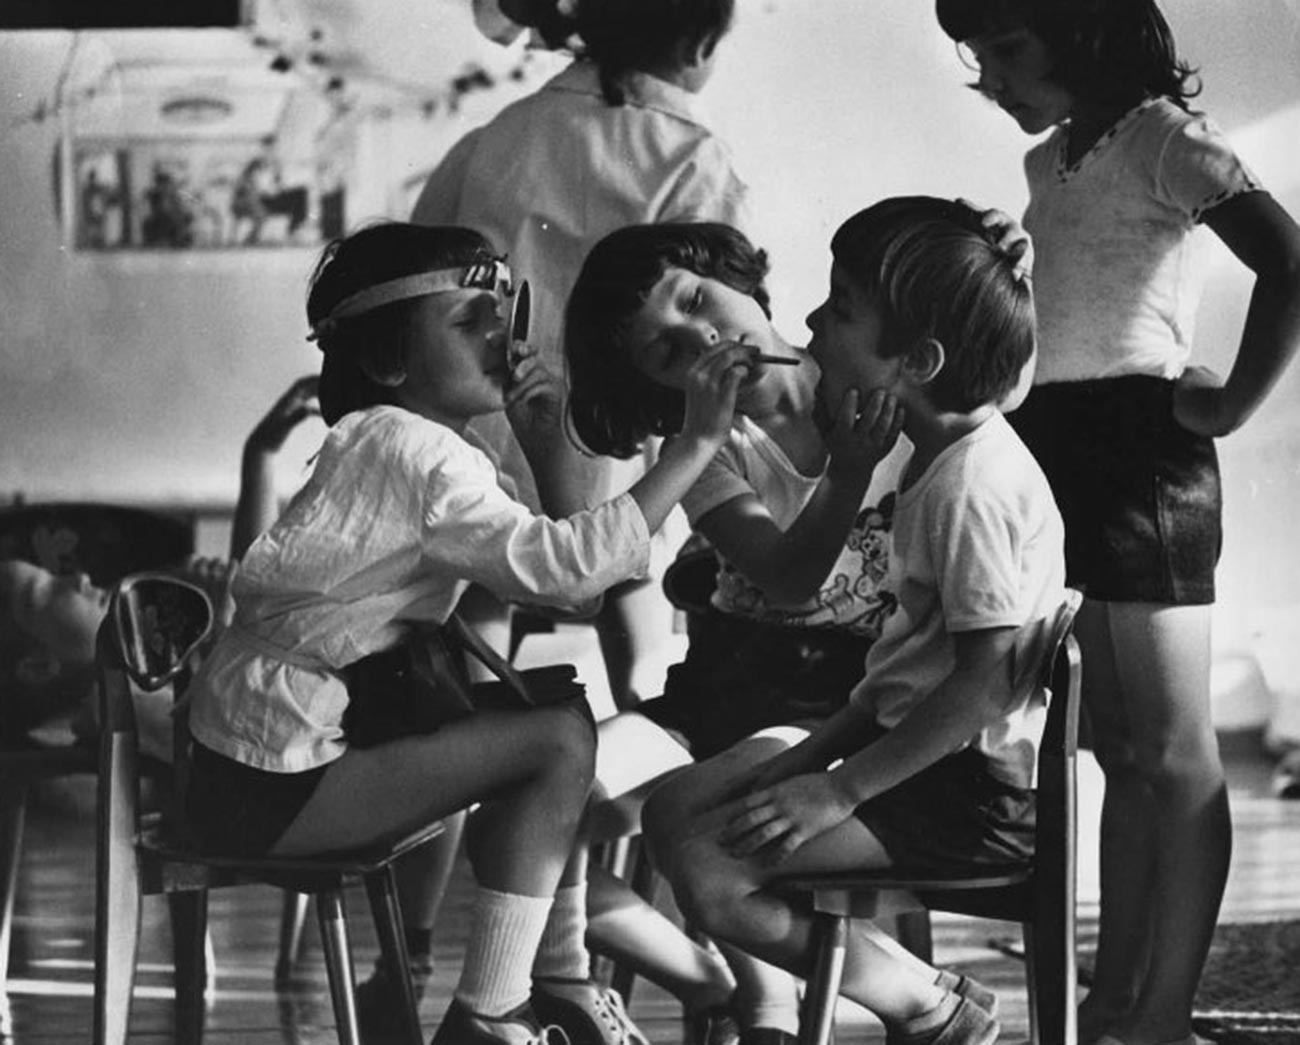 Playing at being dentists. Kindergarten, 1985